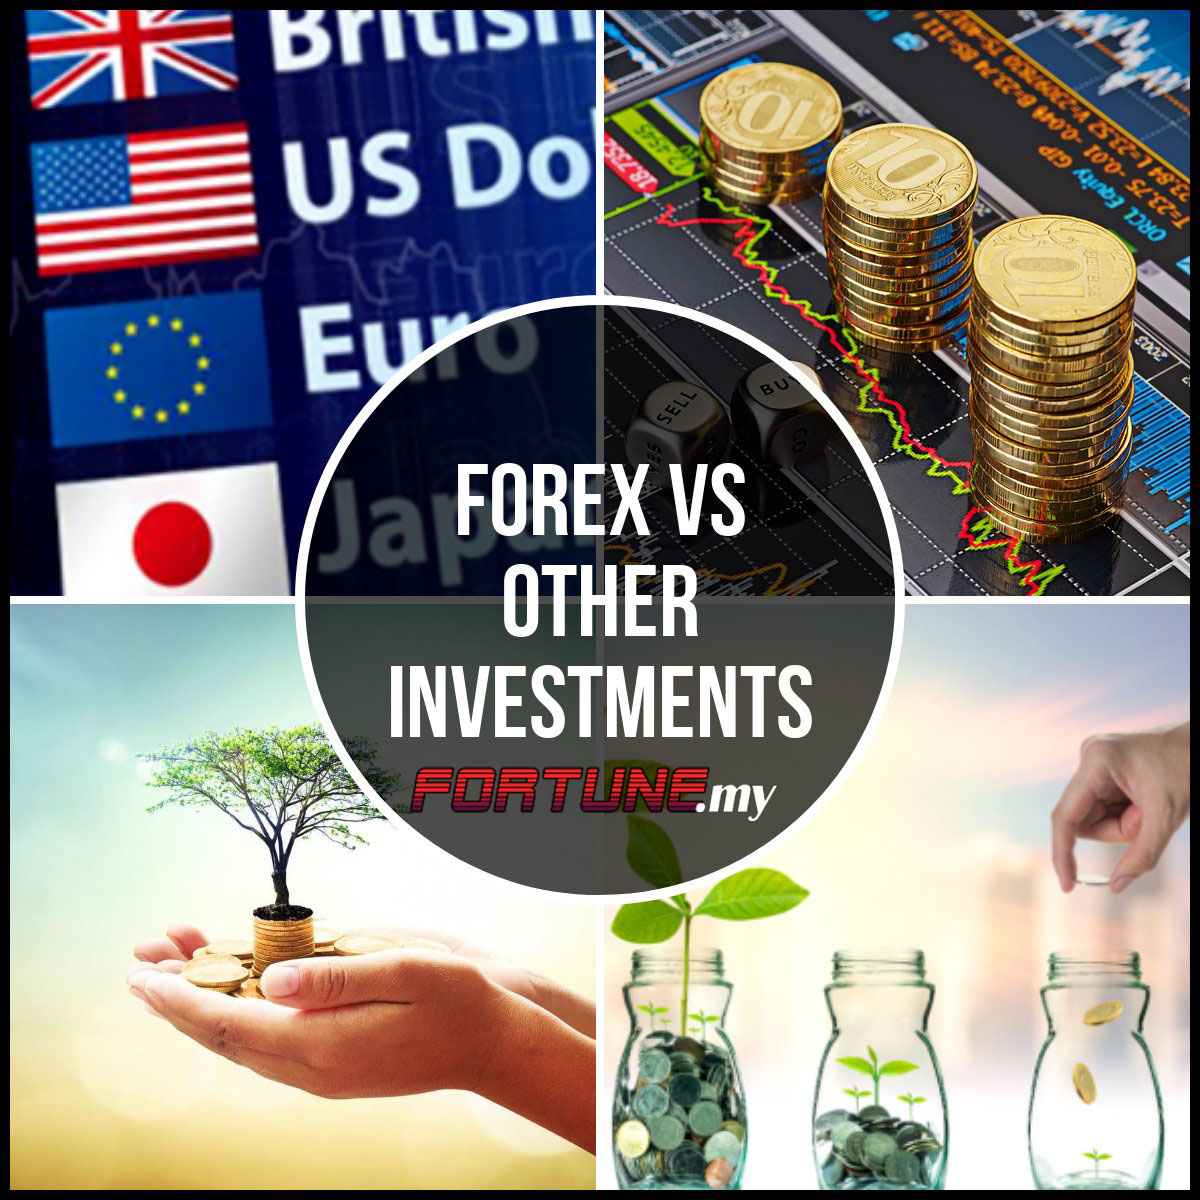 Forex vs other investments